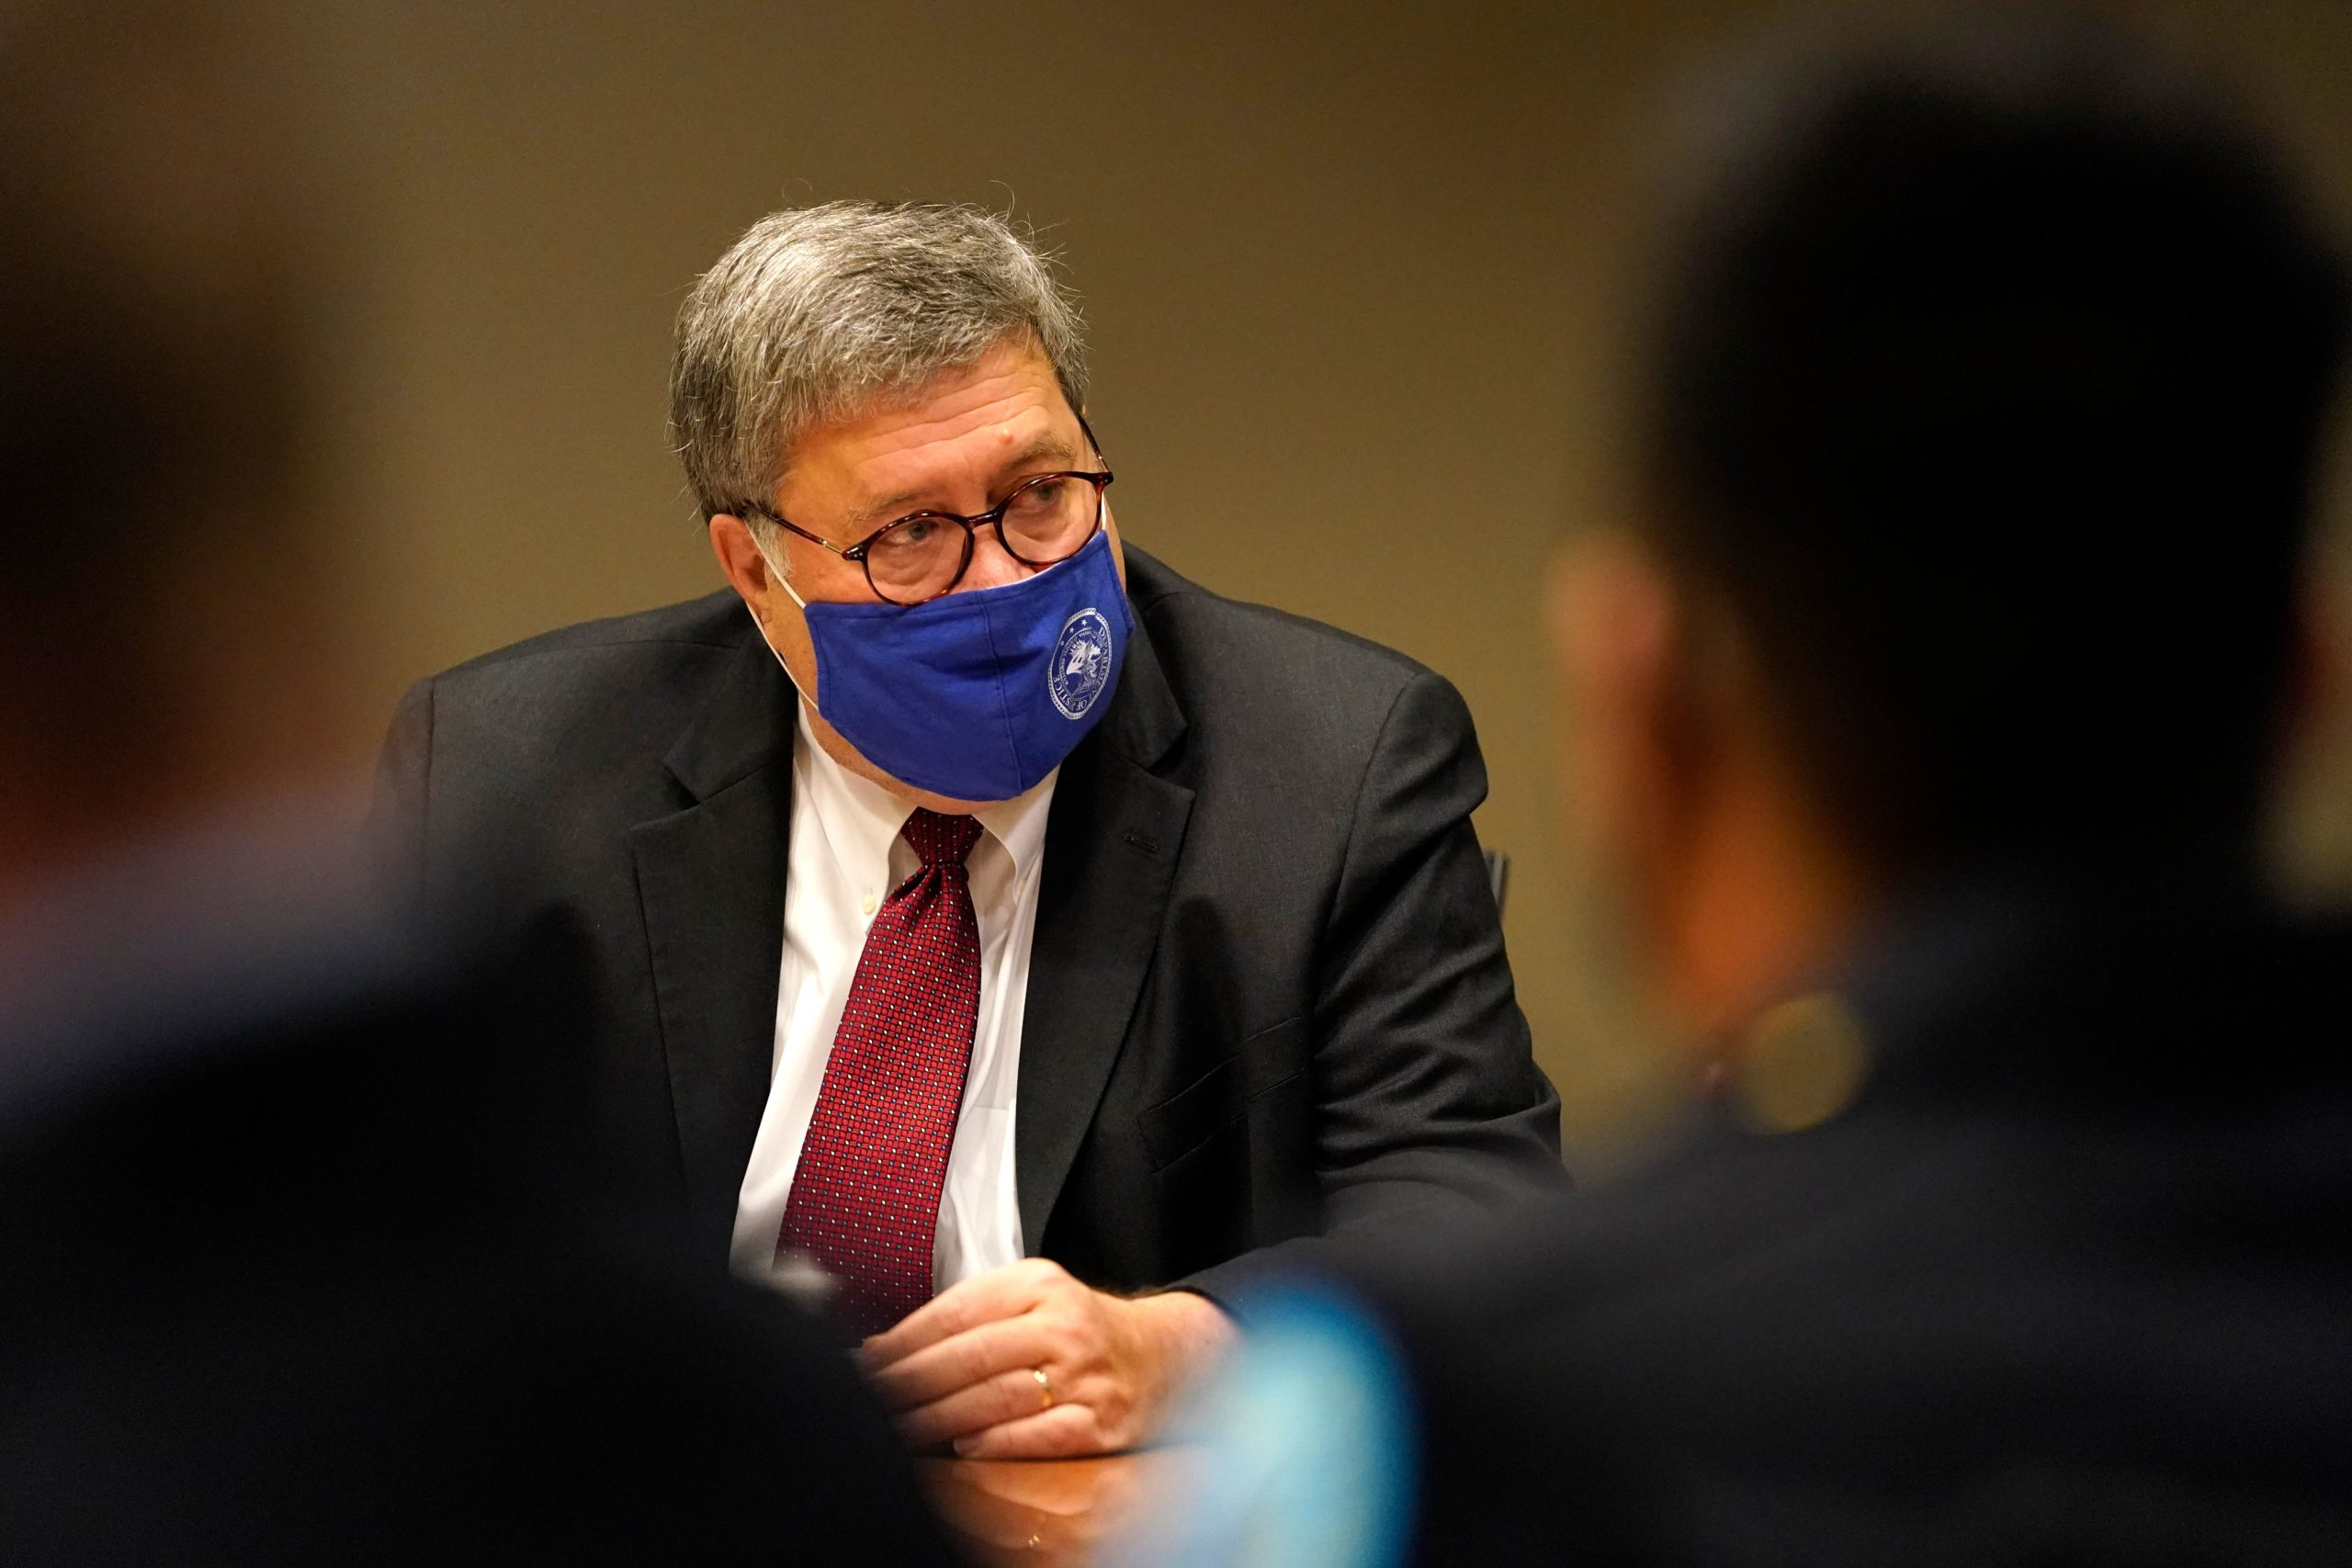 Attorney General William Barr attends a meeting on Oct. 15. (Jeff Roberson/Pool/AFP via Getty Images)